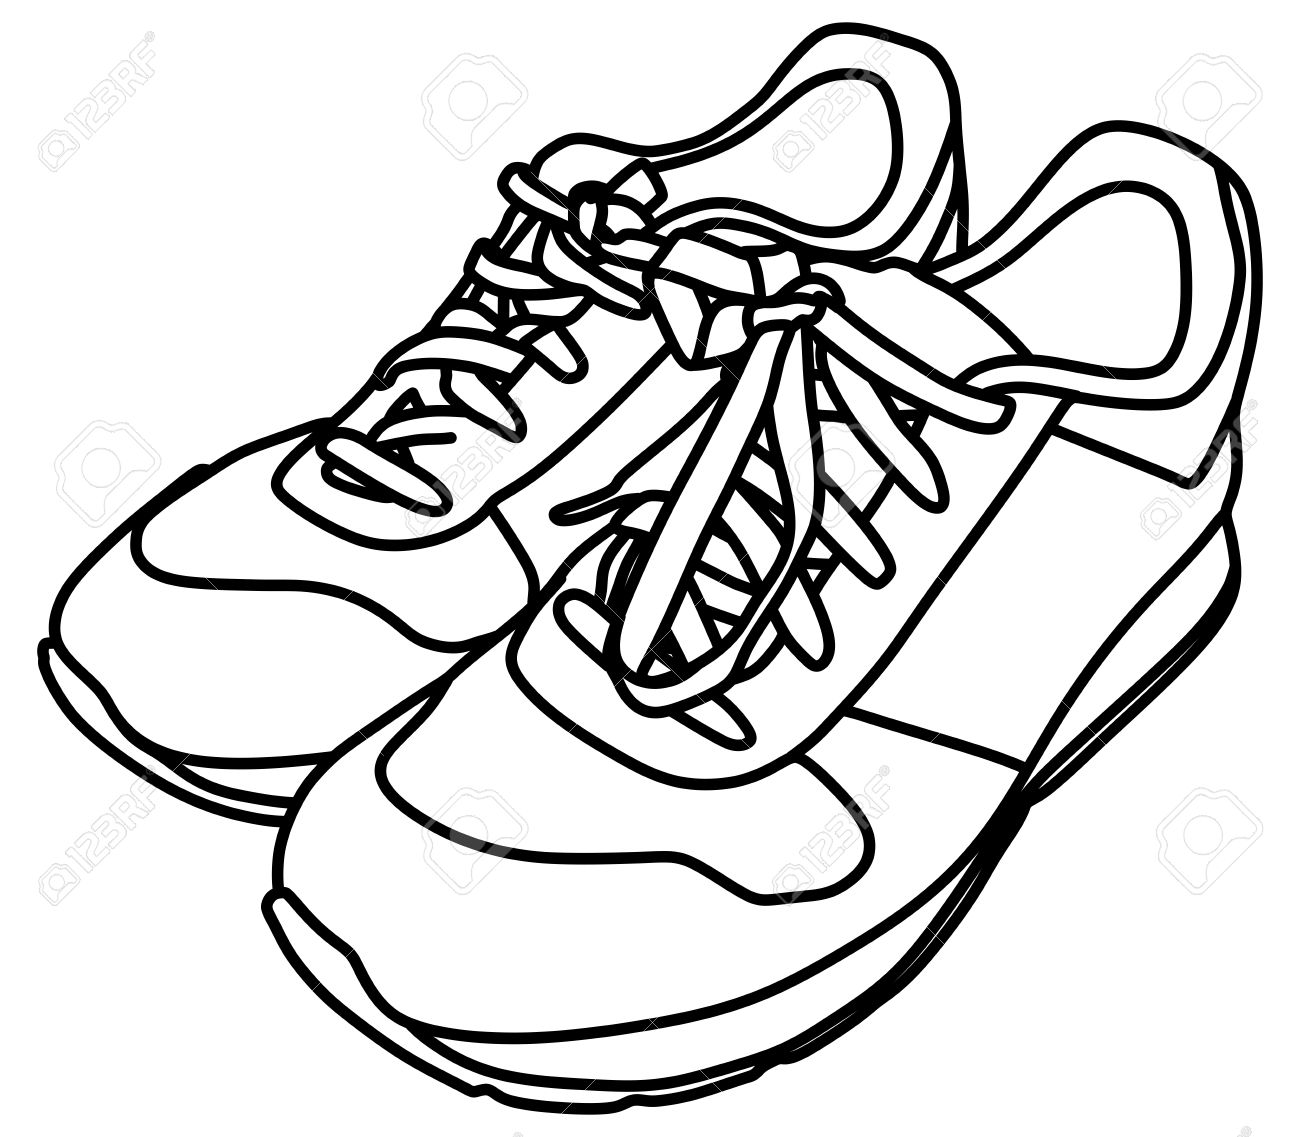 tying sports shoes royalty free cliparts vectors and stock rh 123rf com shoes clipart free shoes clipart png